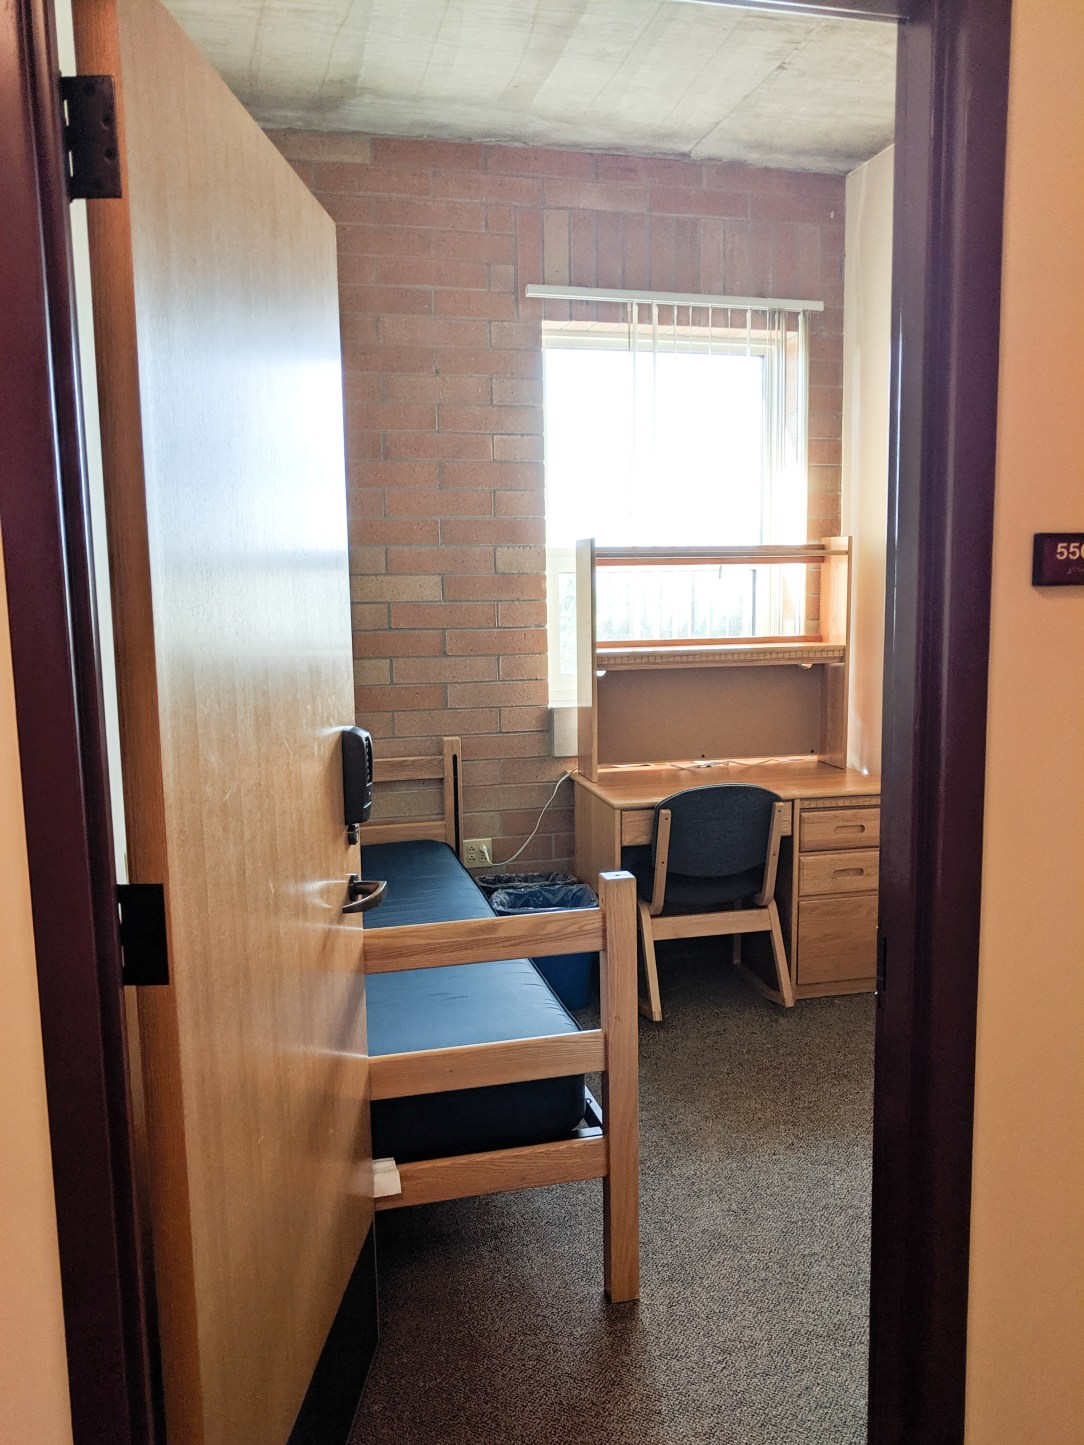 dorm room tour, college campus, dorm room, college